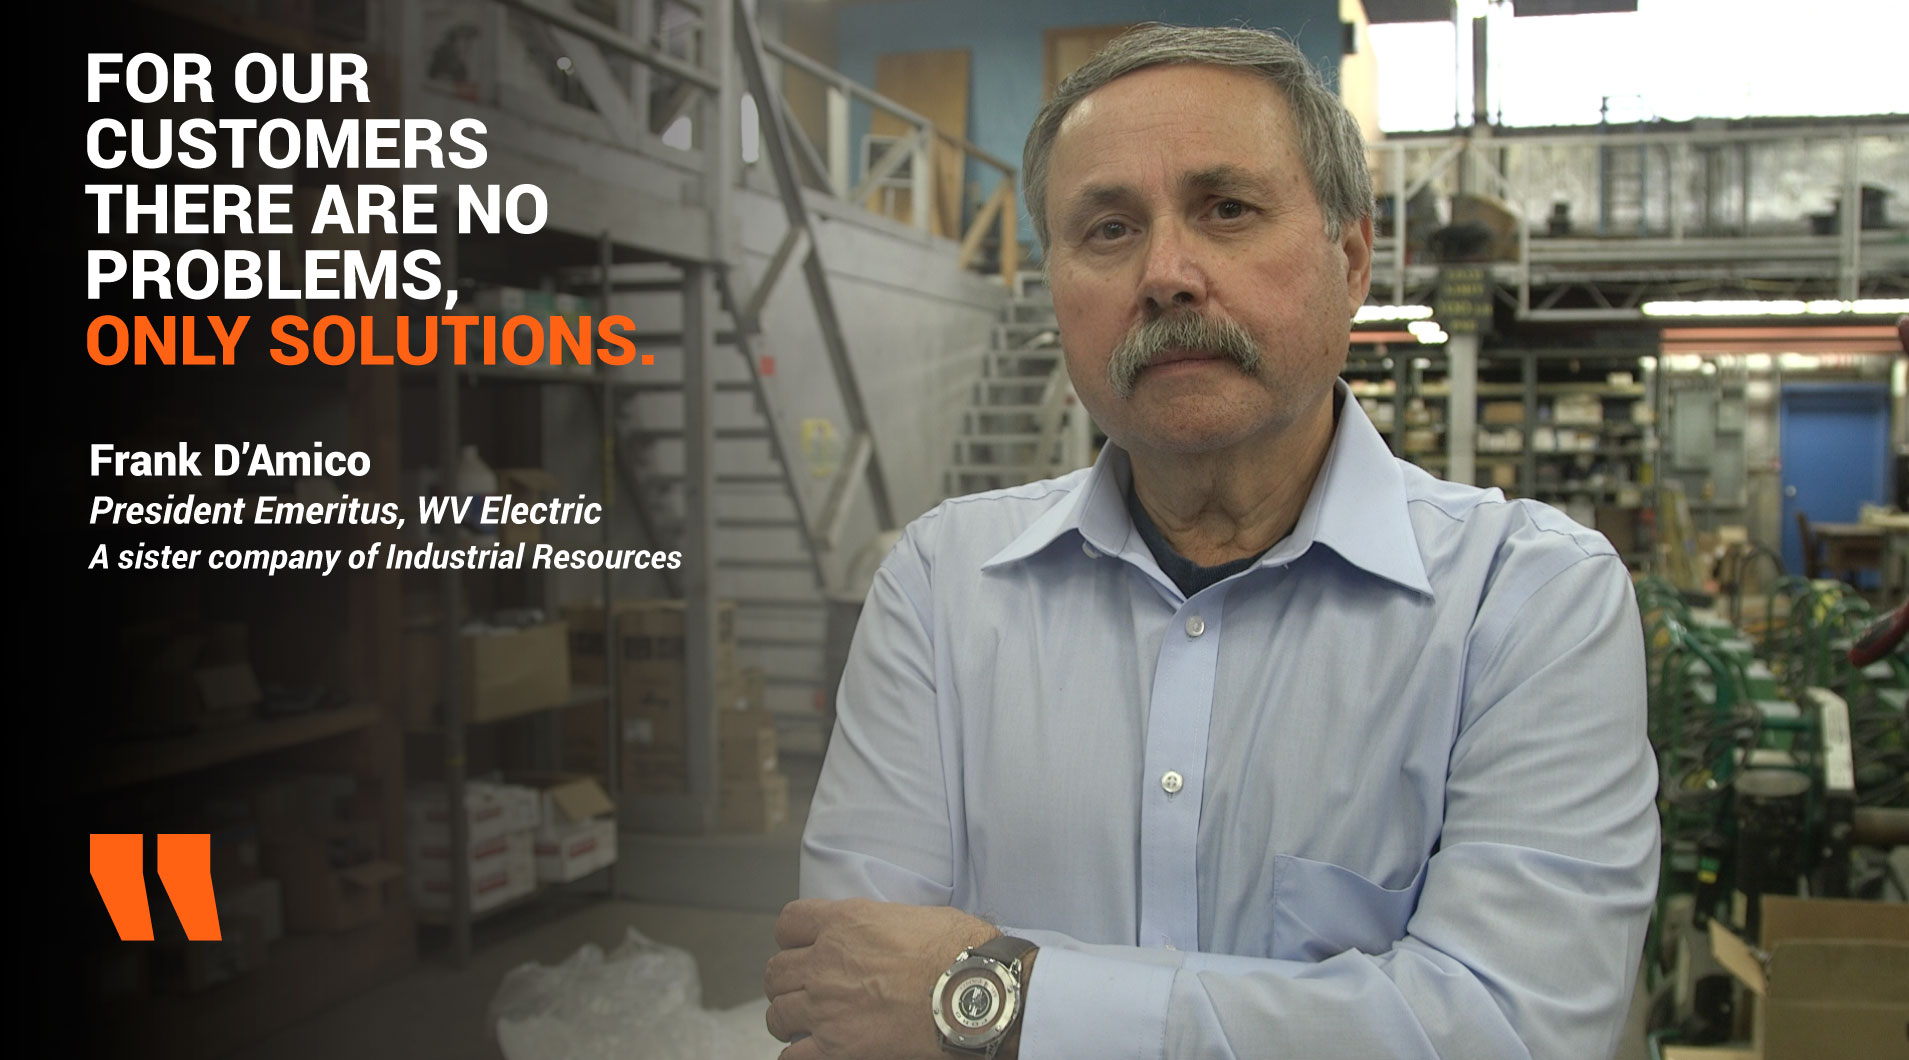 Frank D'Amico - Executive Assistant of WV Electric